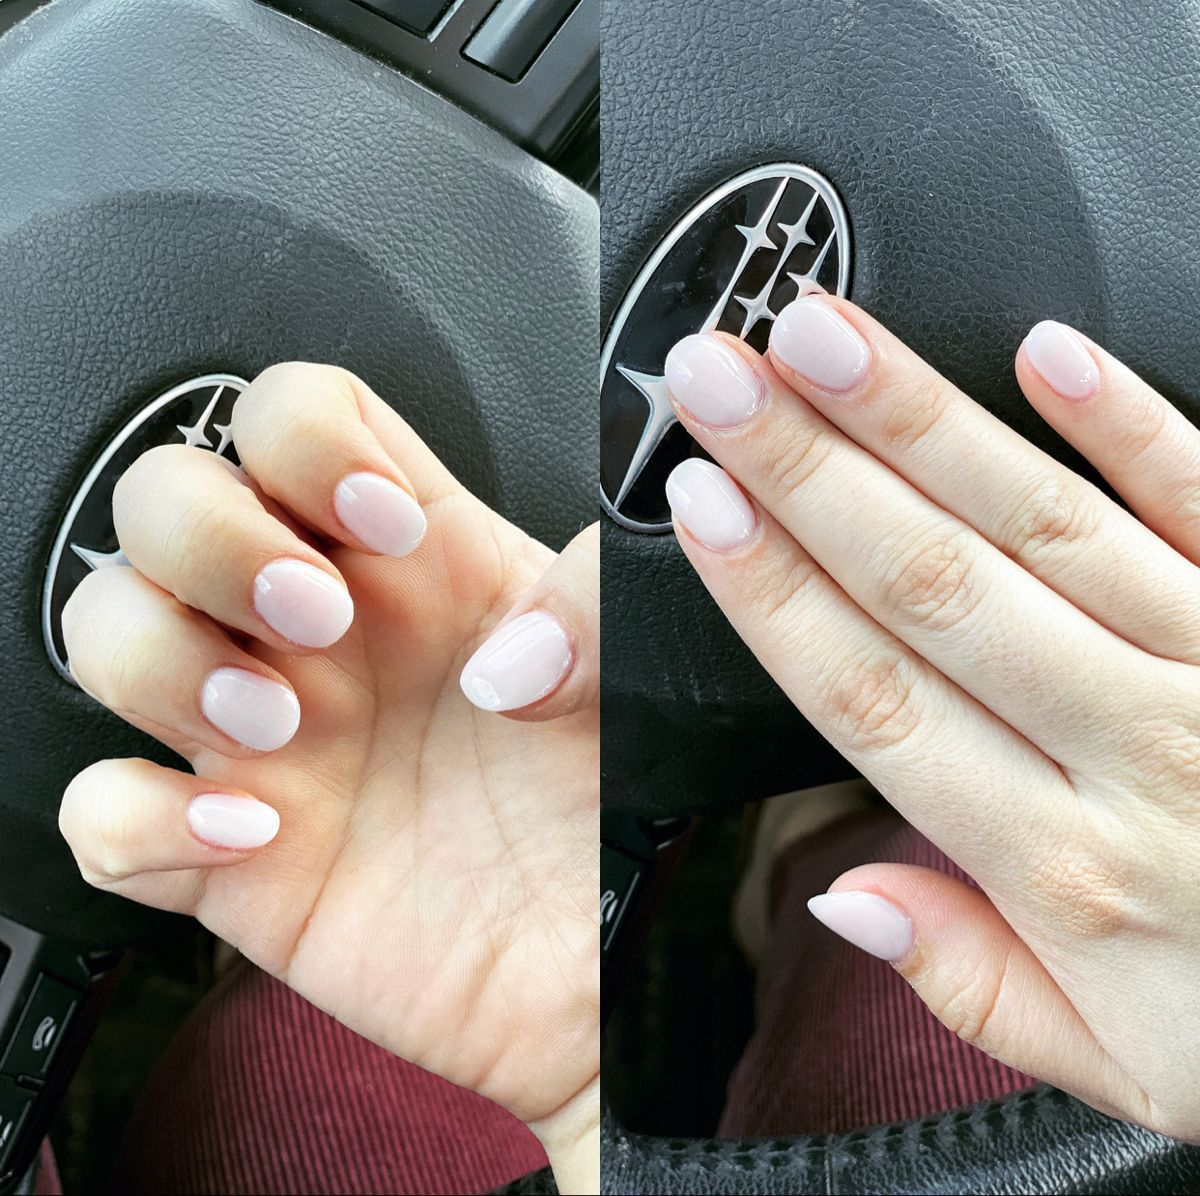 Acrylic Athome Contemplating Manicure Nails Nevert Oneself Short Supplying Considering In 2020 Short Rounded Acrylic Nails Rounded Acrylic Nails Acrylic Nails